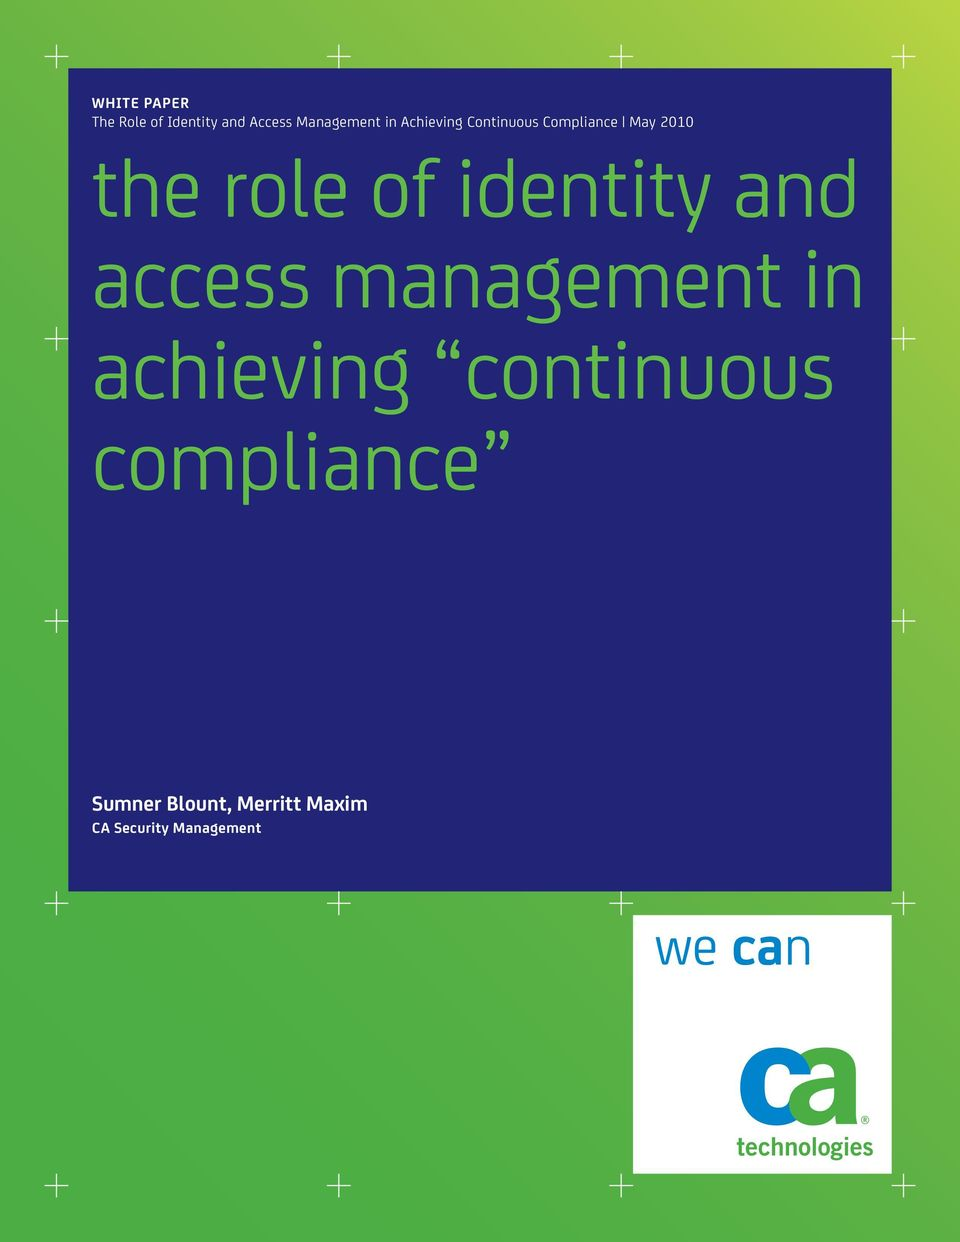 identity and access management in achieving continuous